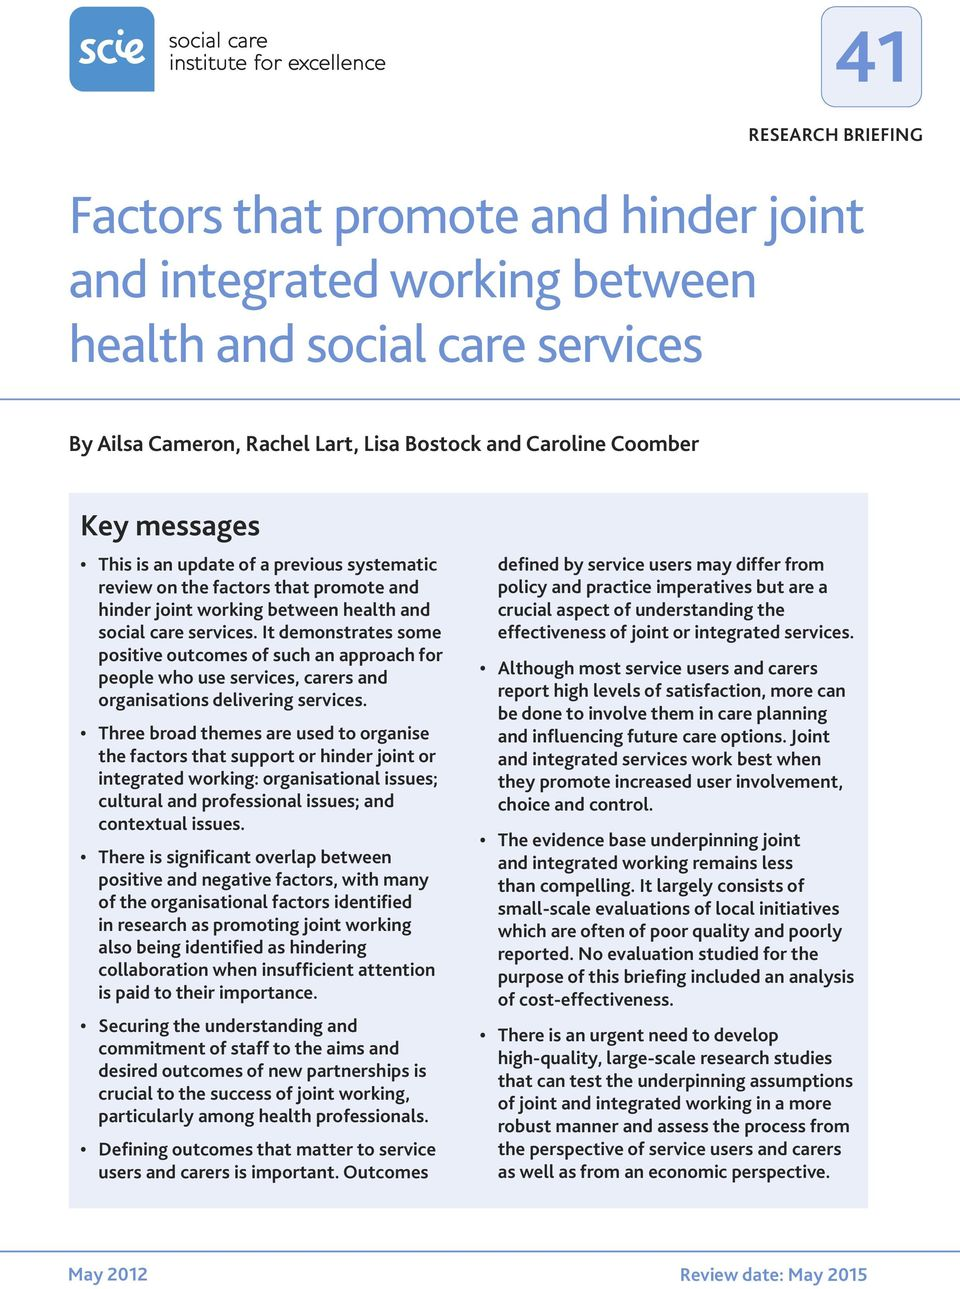 It demonstrates some positive outcomes of such an approach for people who use services, carers and organisations delivering services.